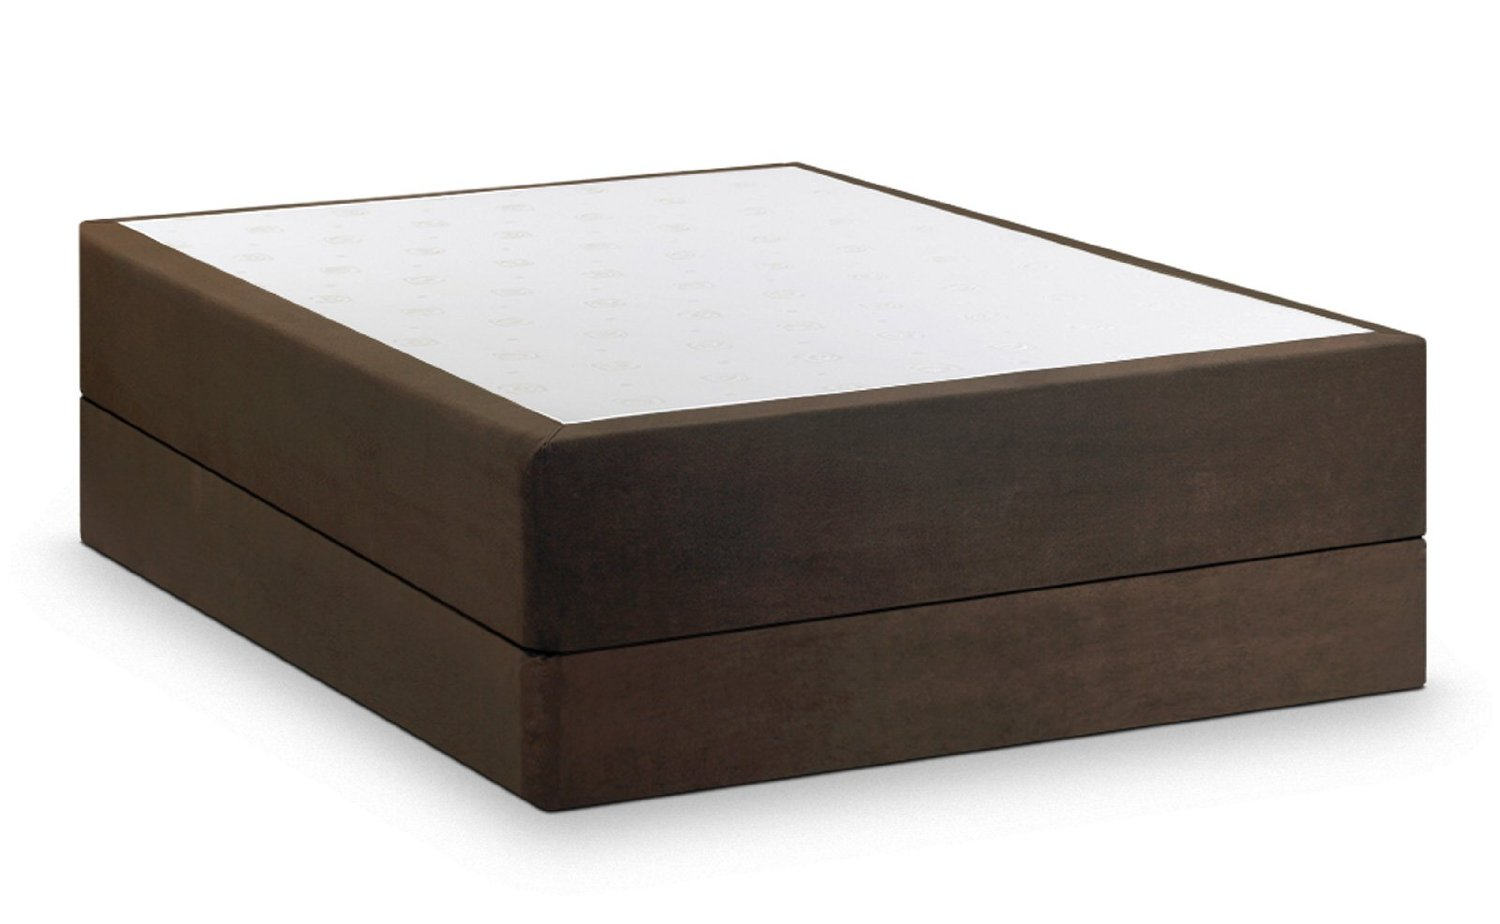 Memory foam mattress reviews best memory foam mattress for Best foam mattress